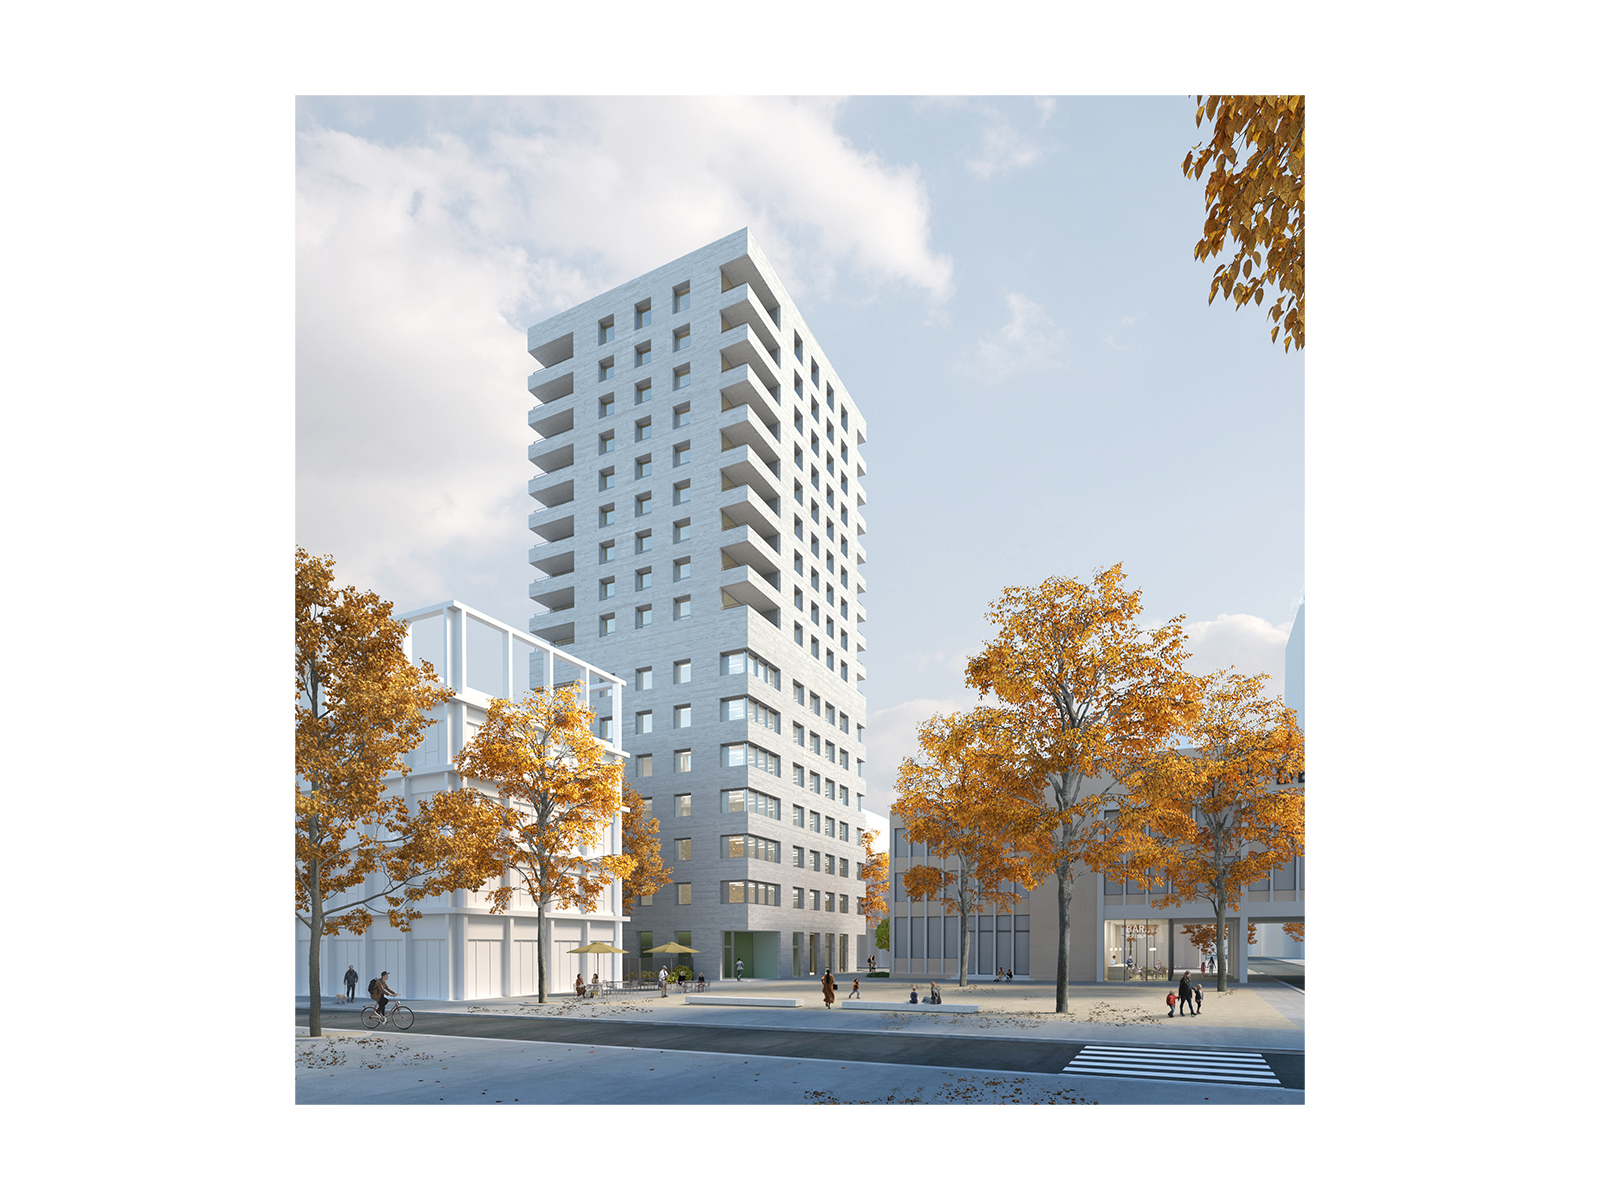 Architectural Visualization for a residential and office complex in France by David Chipperfield Architects.